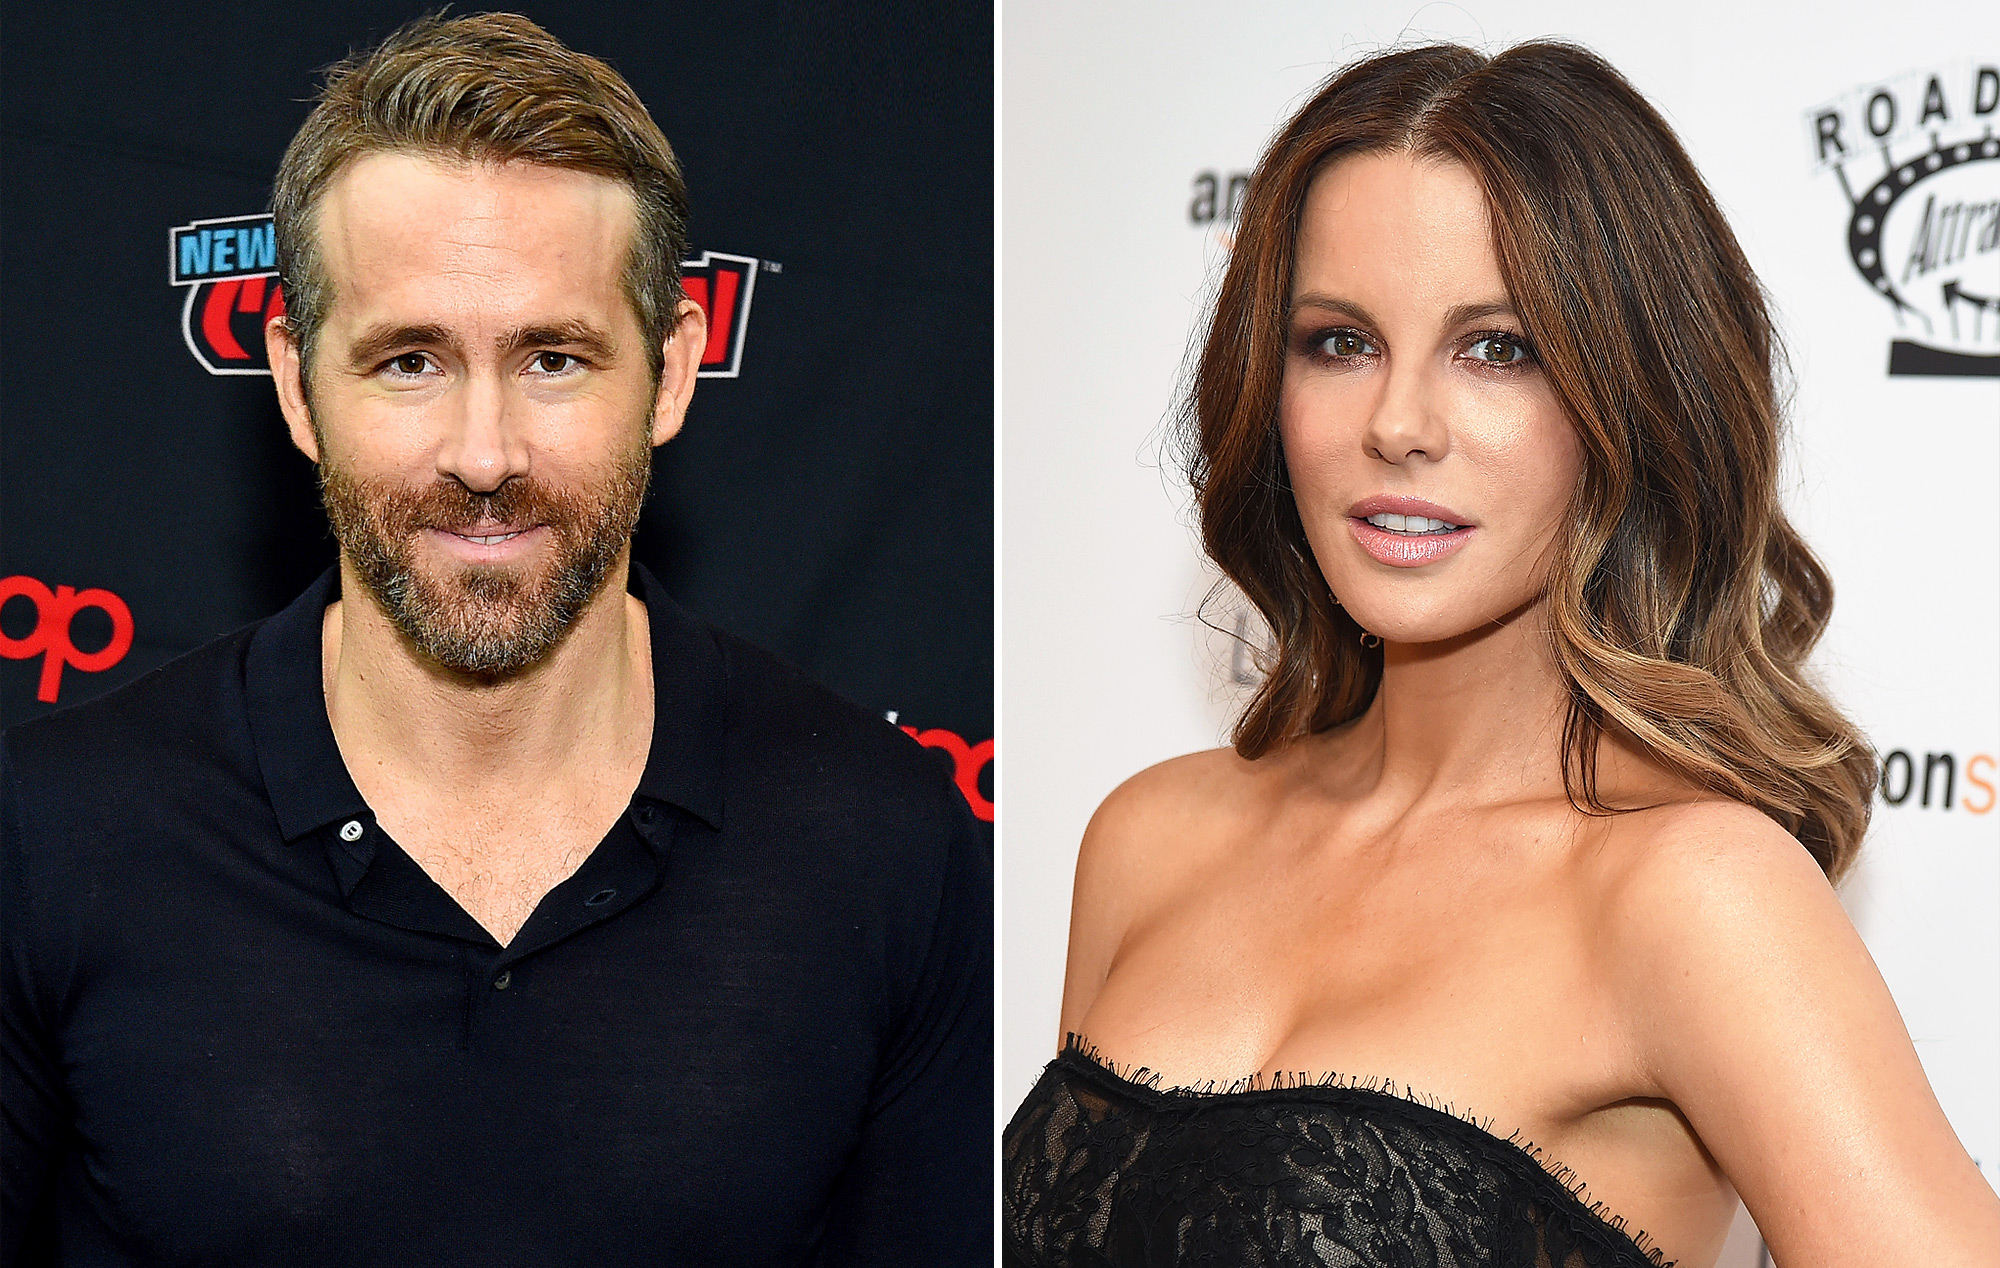 Ryan Reynolds and Kate Beckinsale